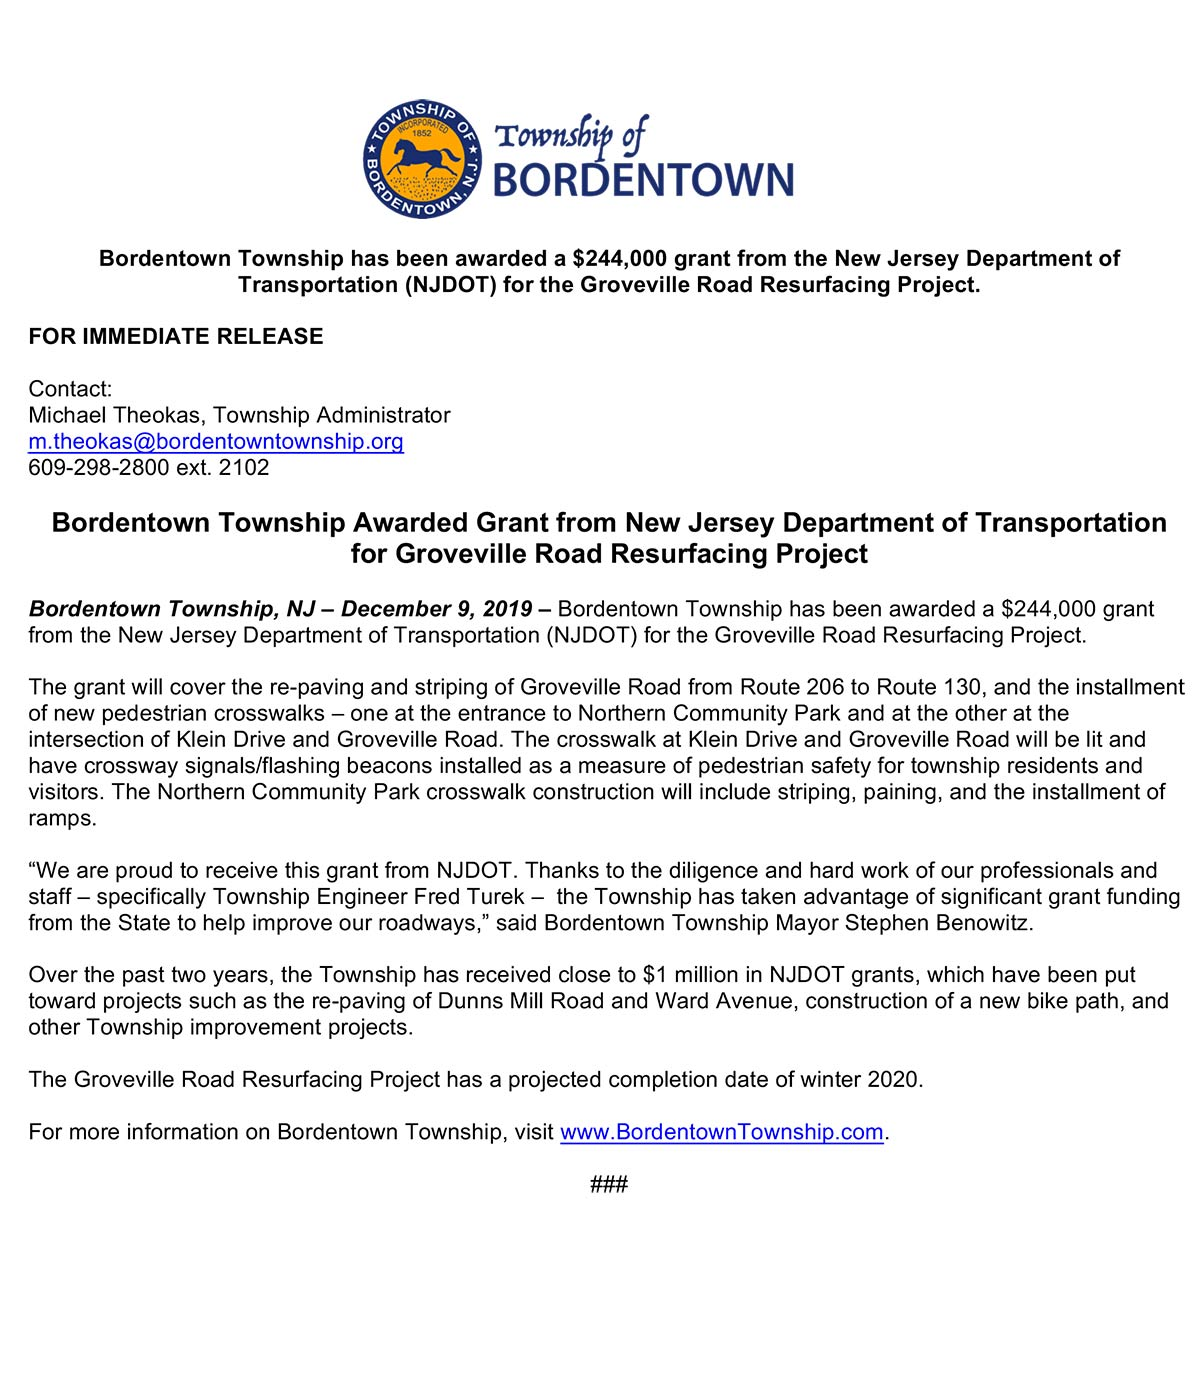 Bordentown Township has been awarded a $244,000 grant from the New Jersey Department of Transportation (NJDOT) for the Groveville Road Resurfacing Project.